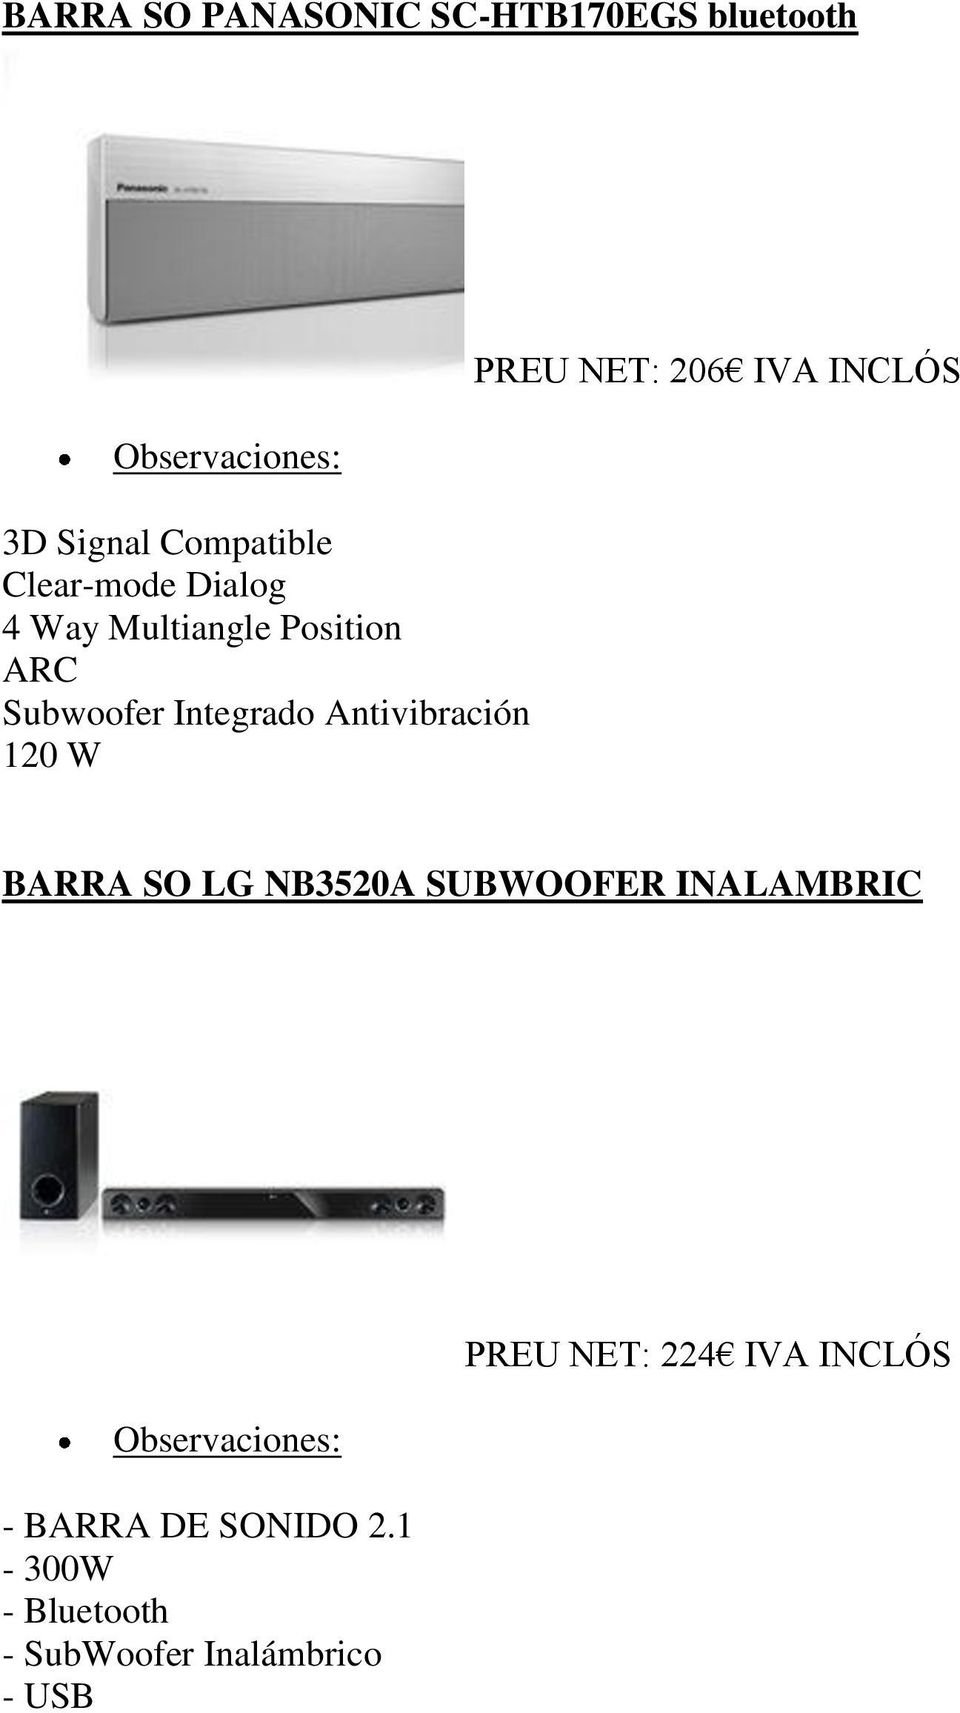 PREU NET: 206 IVA INCLÓS BARRA SO LG NB3520A SUBWOOFER INALAMBRIC - BARRA DE